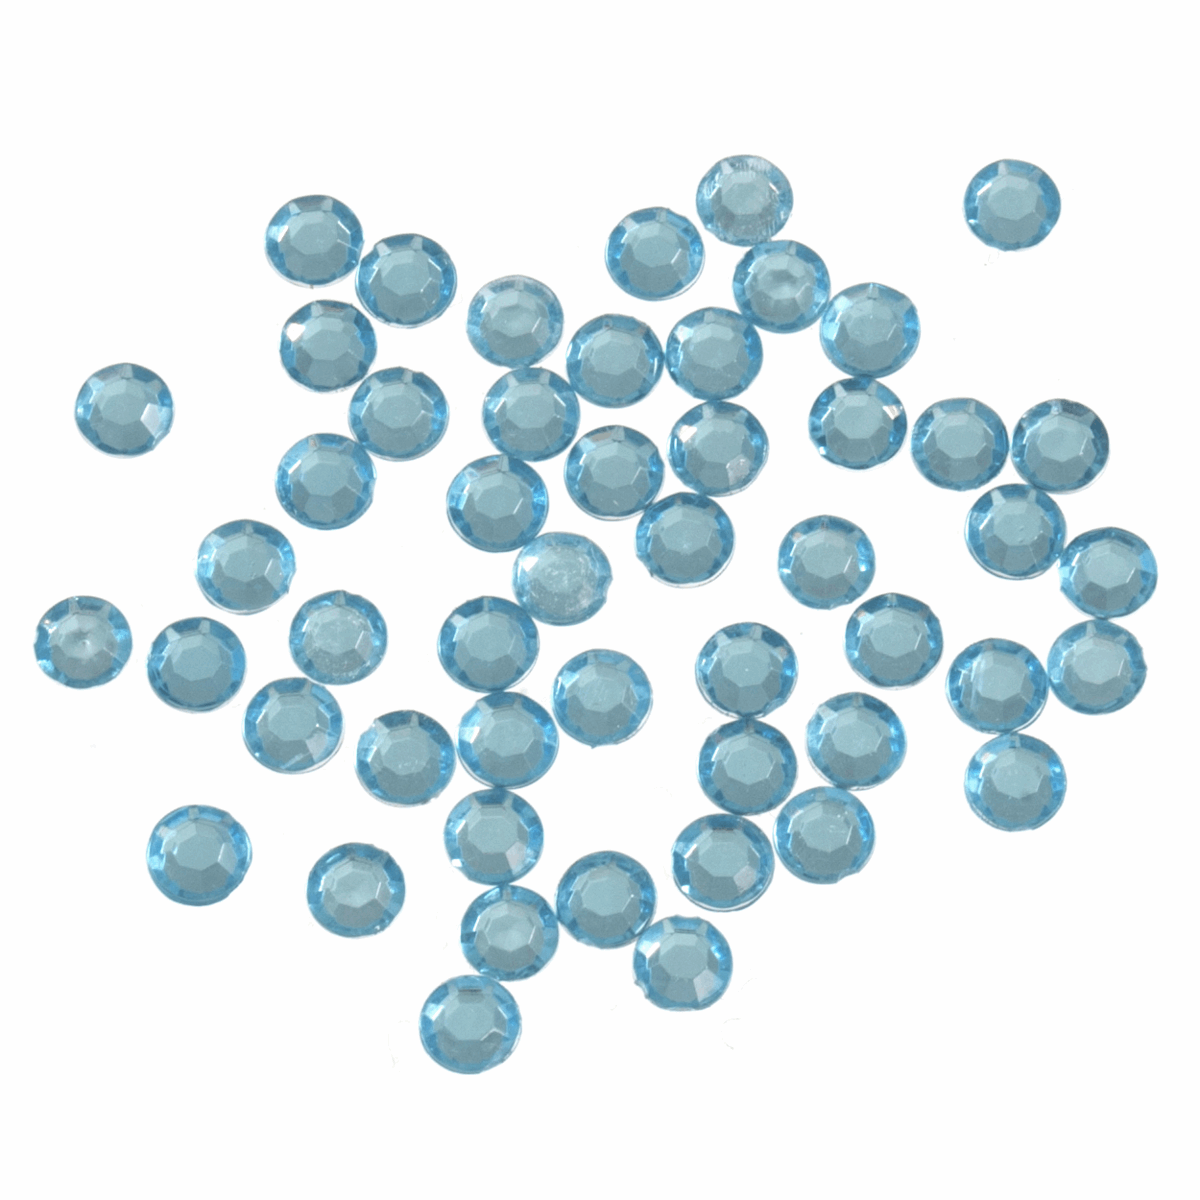 Picture of Acrylic Stones: Glue-On: Round: Medium-5mm Blue